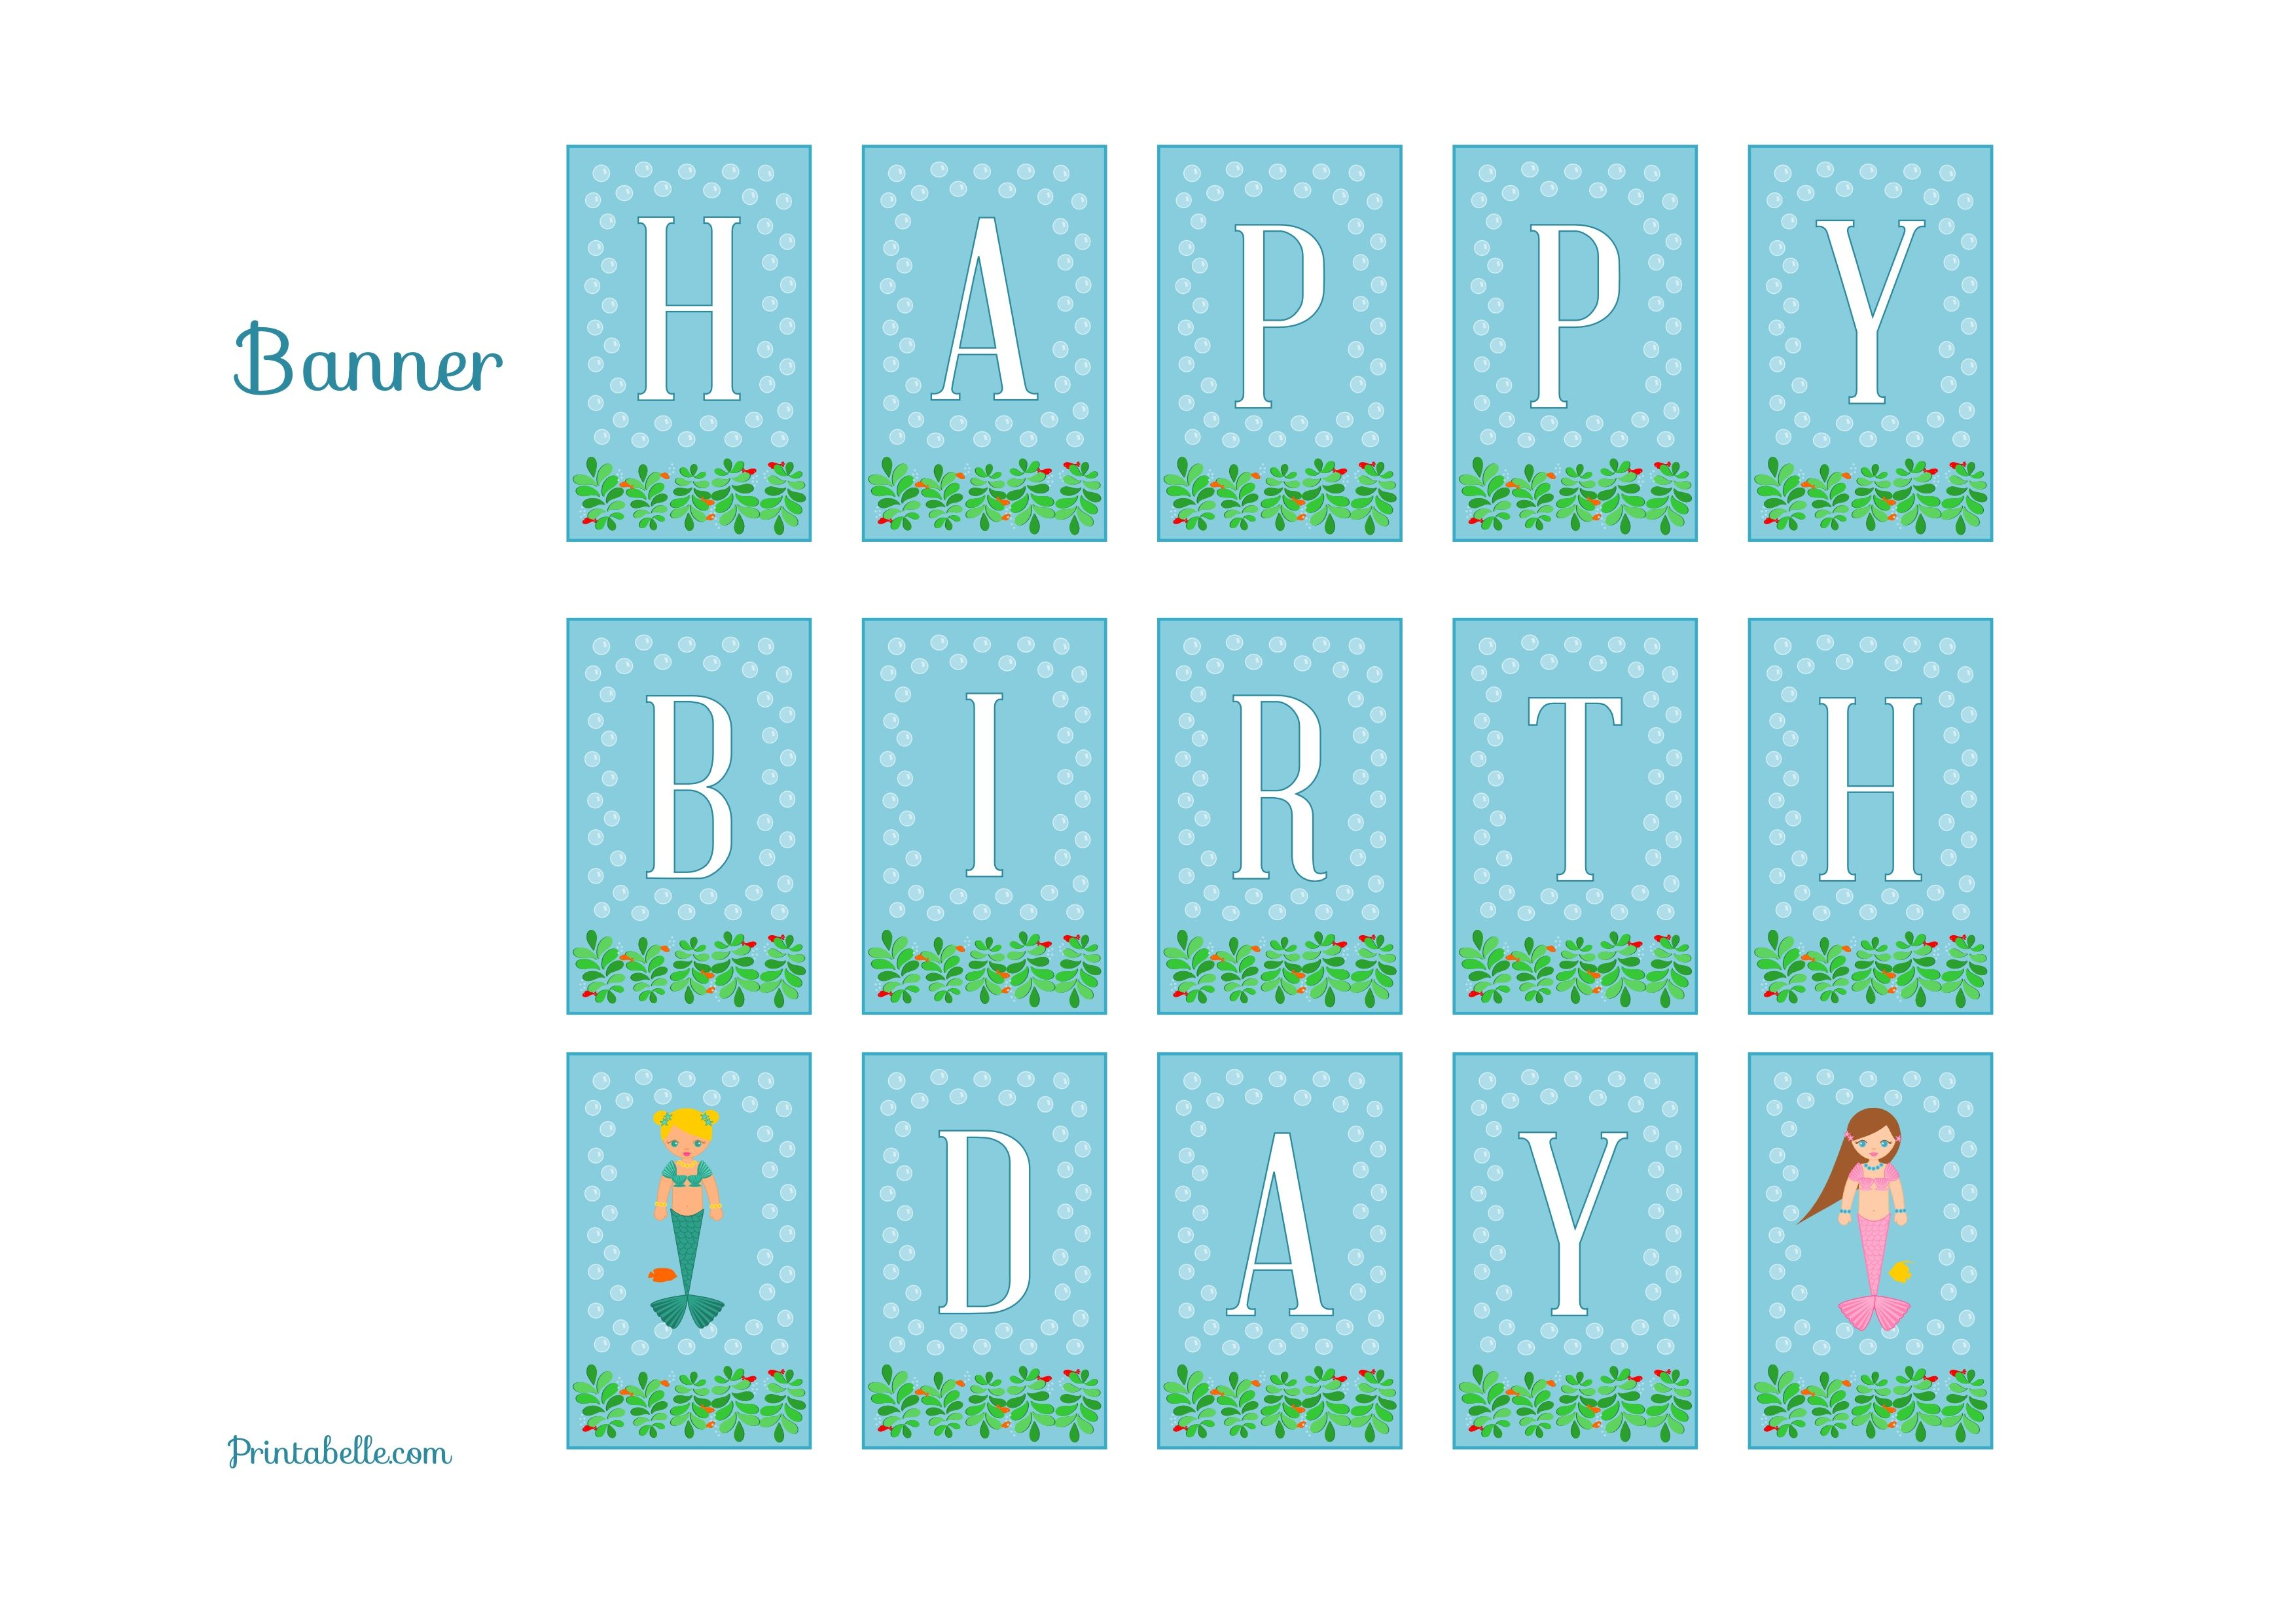 Free Mermaid Birthday Party Printables From Printabelle | Mermaid - Free Printable Little Mermaid Birthday Banner